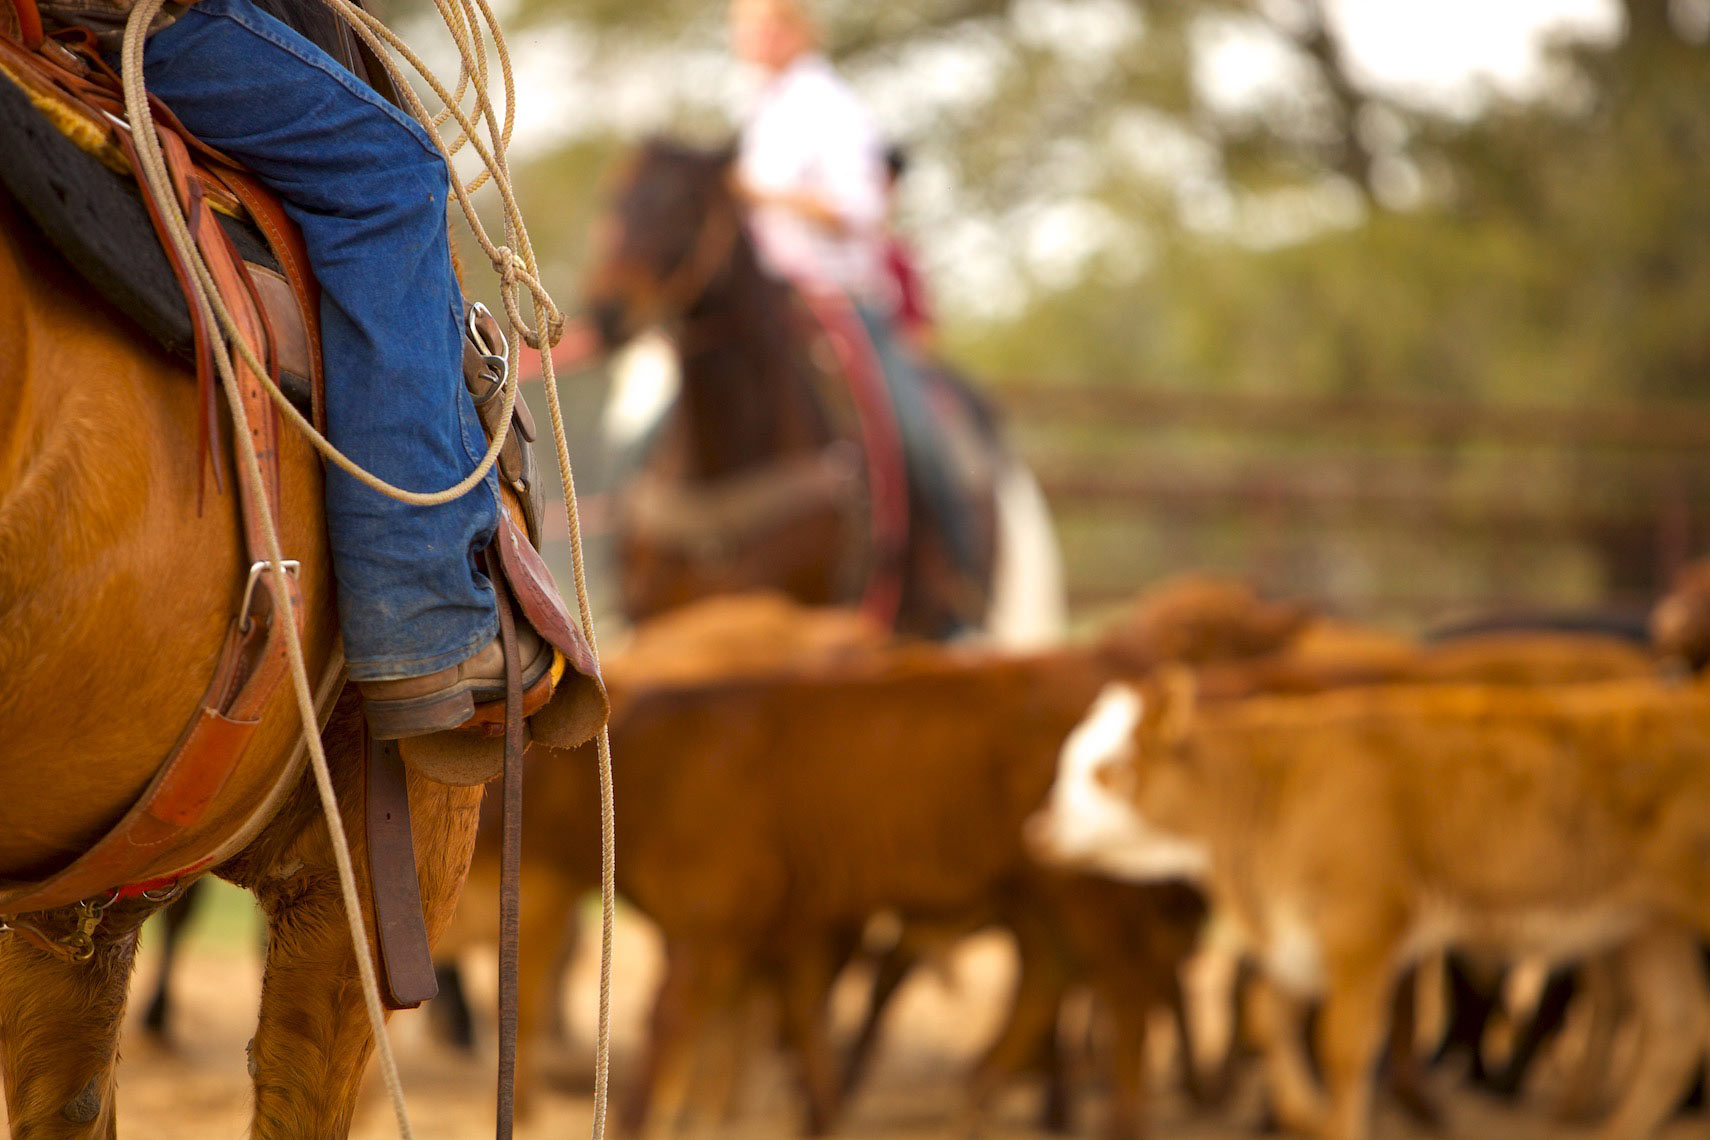 peeler-ranch-cattle-texas-jason-risner-photography-6462